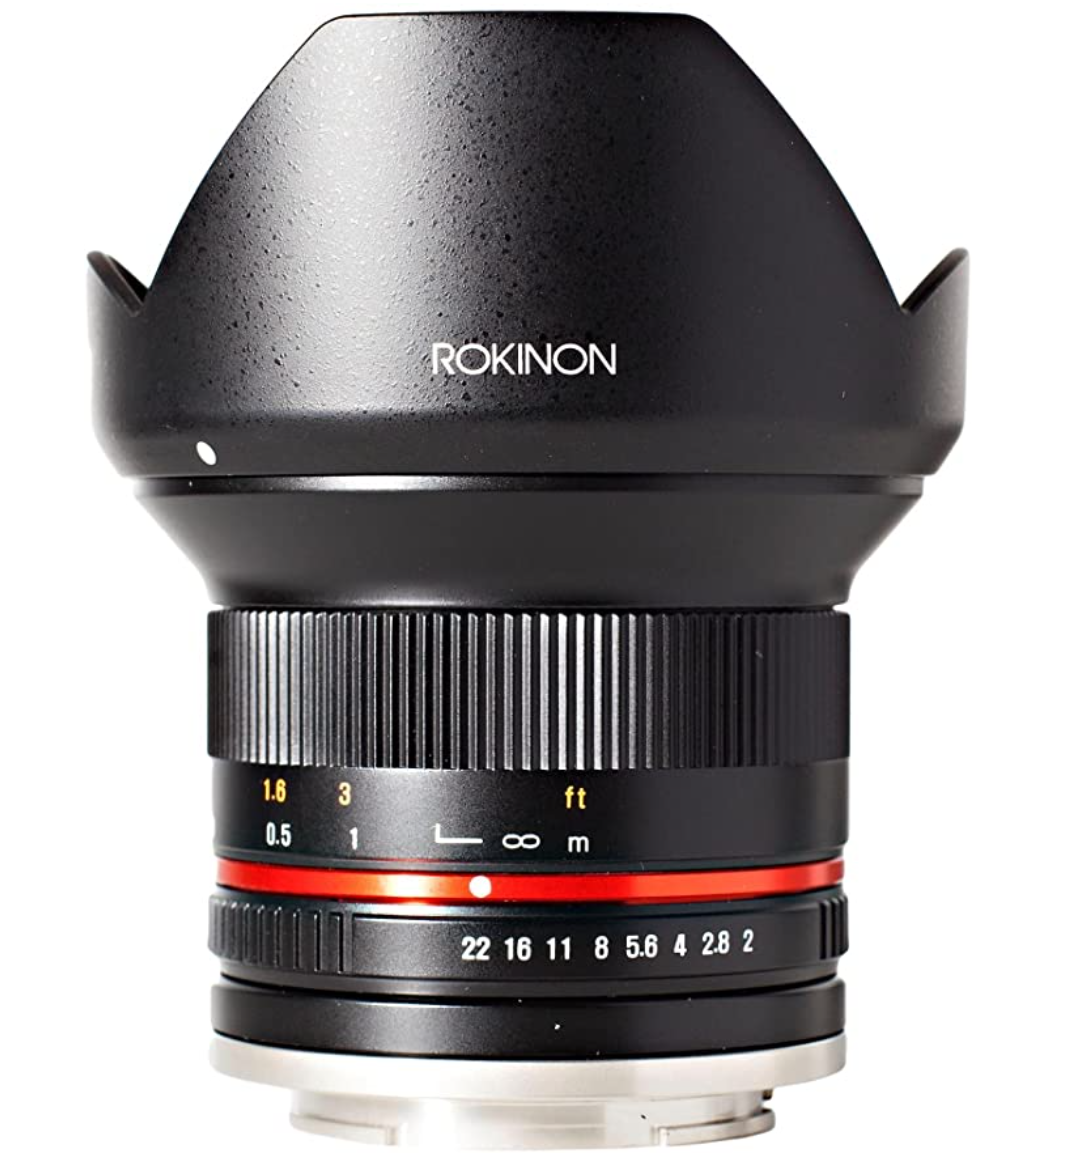 Deal of the day for Prime Members: Rokinon 12mm F2.0 NCS CS Ultra Wide Angle Lens Sony E-Mount (NEX) (Black) (RK12M-E)